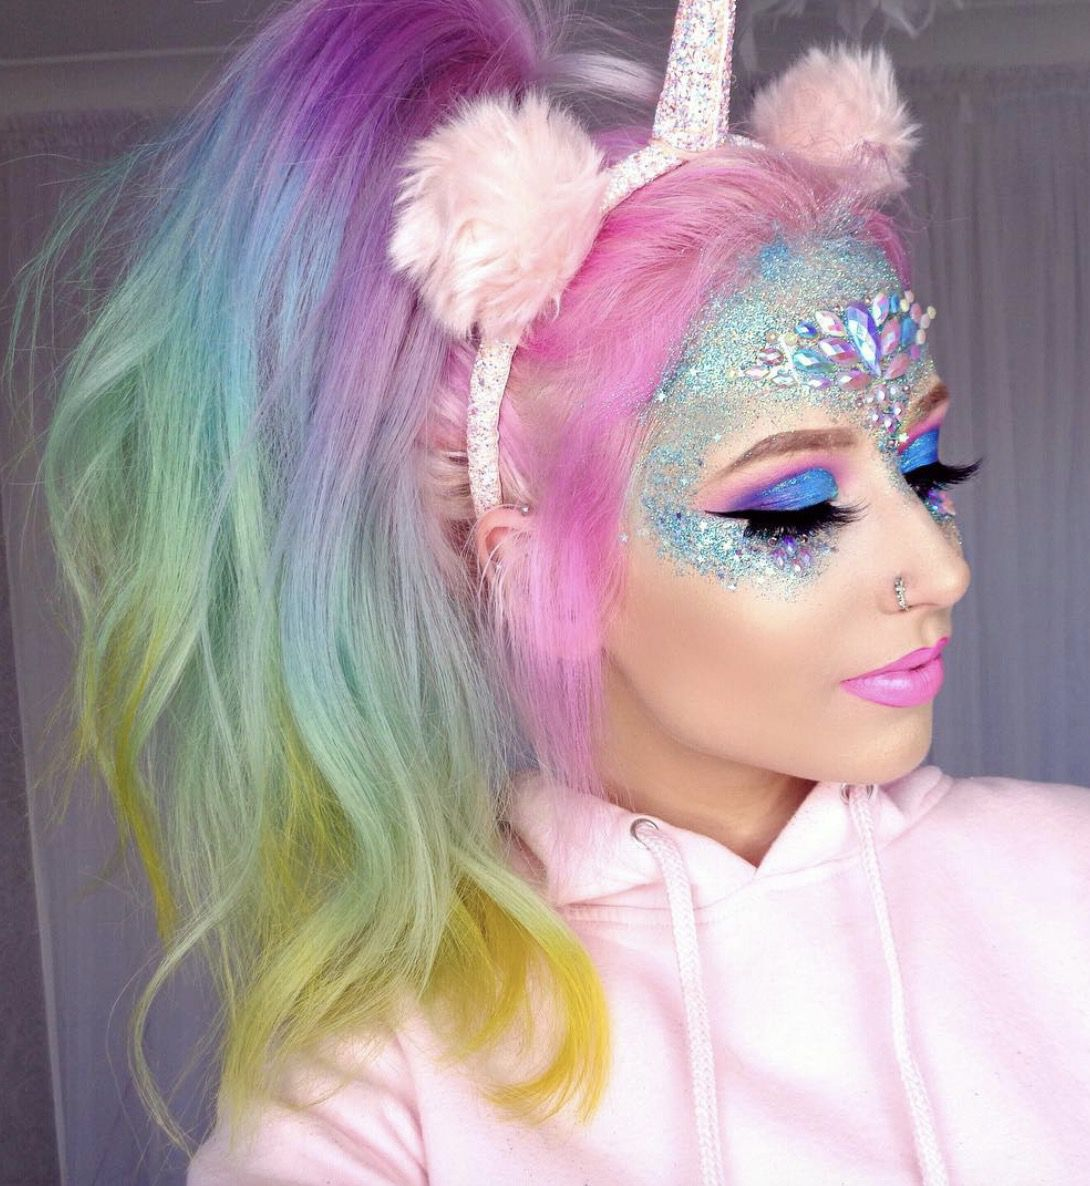 41 Most Jaw-Dropping Halloween Makeup Ideas That Are Still Pretty: Unicorn Makeup / Click though to see more awe inspiring pretty Halloween makeup looks, gorgeous Halloween makeup and Halloween costumes. #halloweenmakeup #halloweenmakeuppretty #halloweencostumes #halloweenmakeupinspo #unicornmakeup